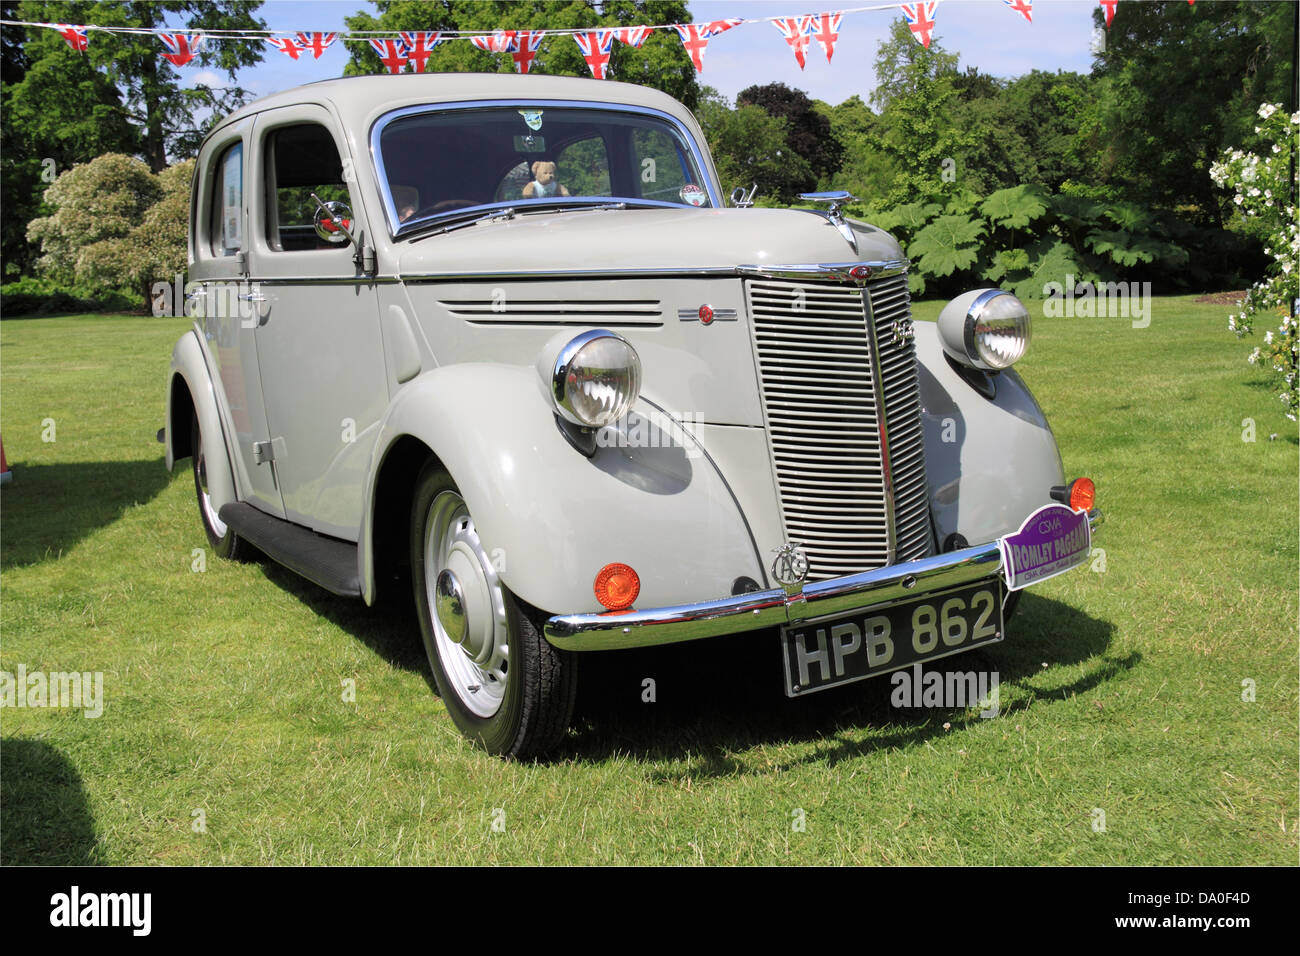 1938 Ford Prefect E93A, Brooklands Museum Trust display, Royal Horticultural Society Garden Party Weekend, 29th - Stock Image